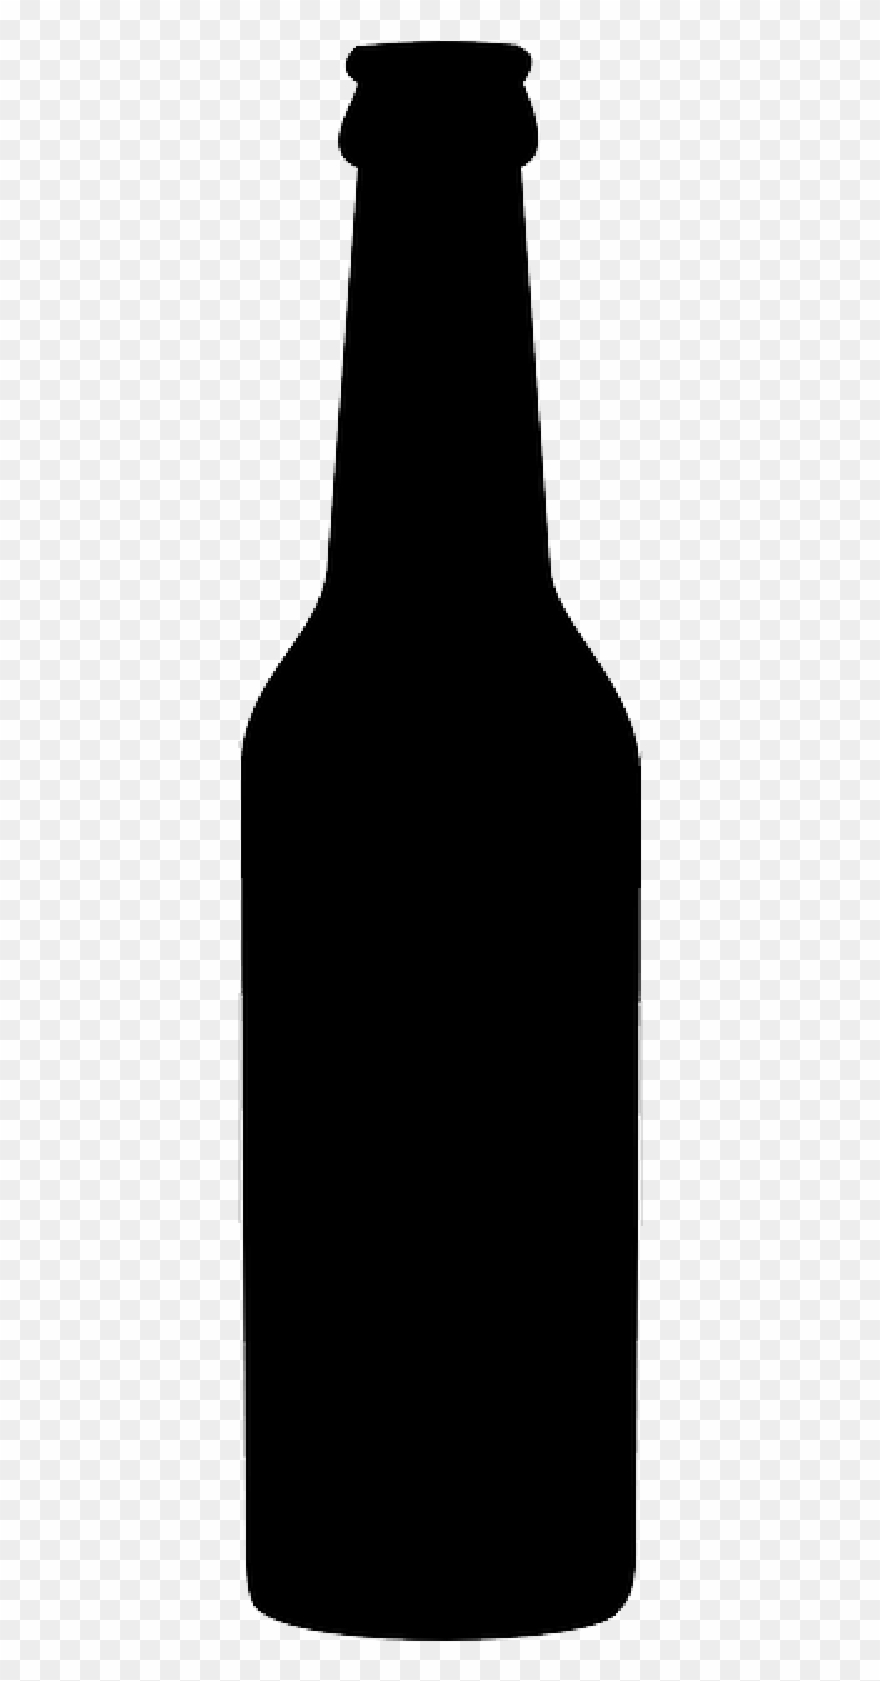 Beer bottle with his in it clipart clip art freeuse stock Beer Bottle Vector Png Clipart (#44622) - PinClipart clip art freeuse stock